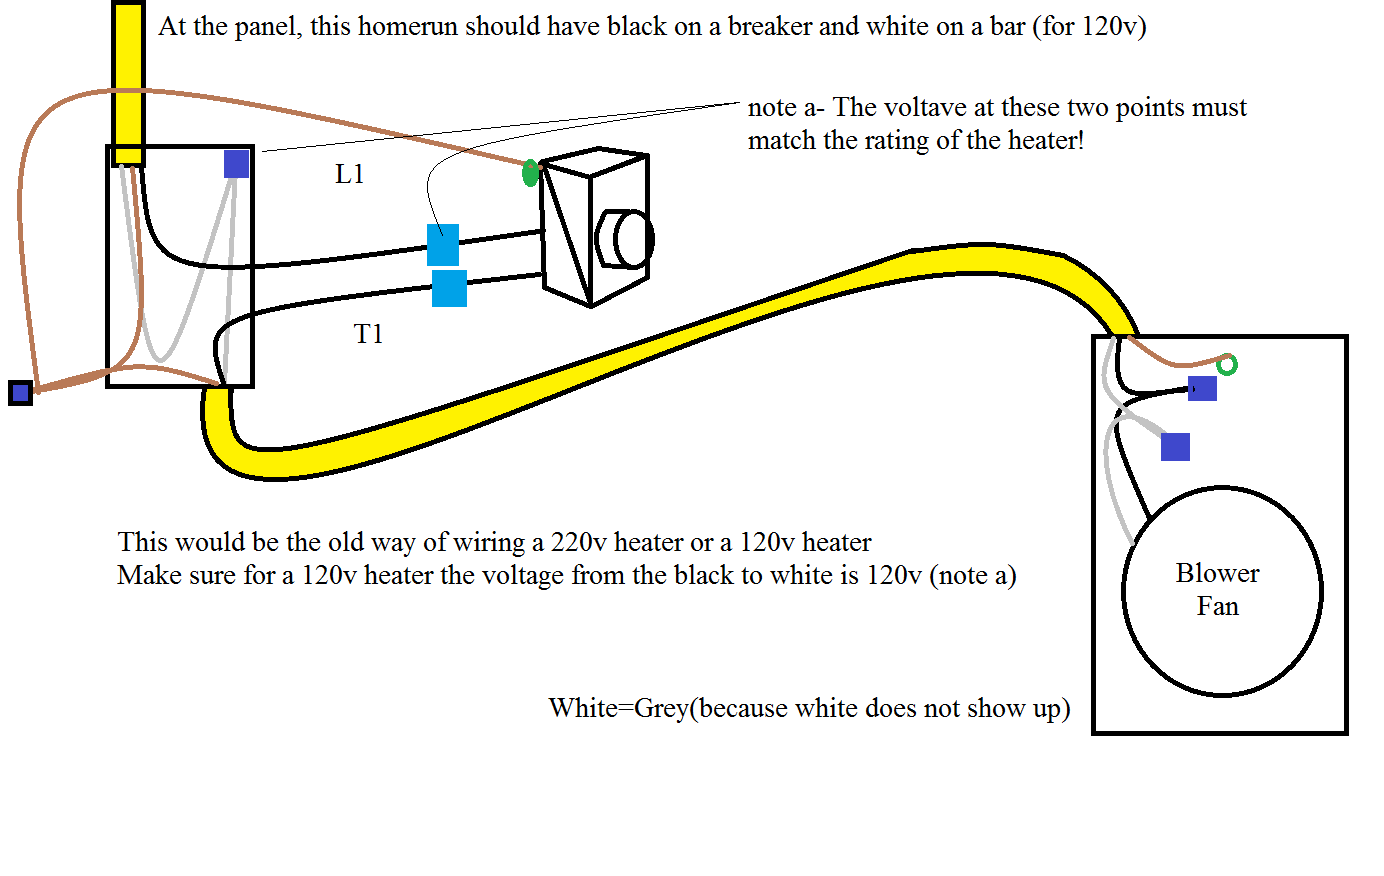 Peachy Basic Help And Information Wiring Thermostat For 120V Heater Wiring Cloud Inklaidewilluminateatxorg